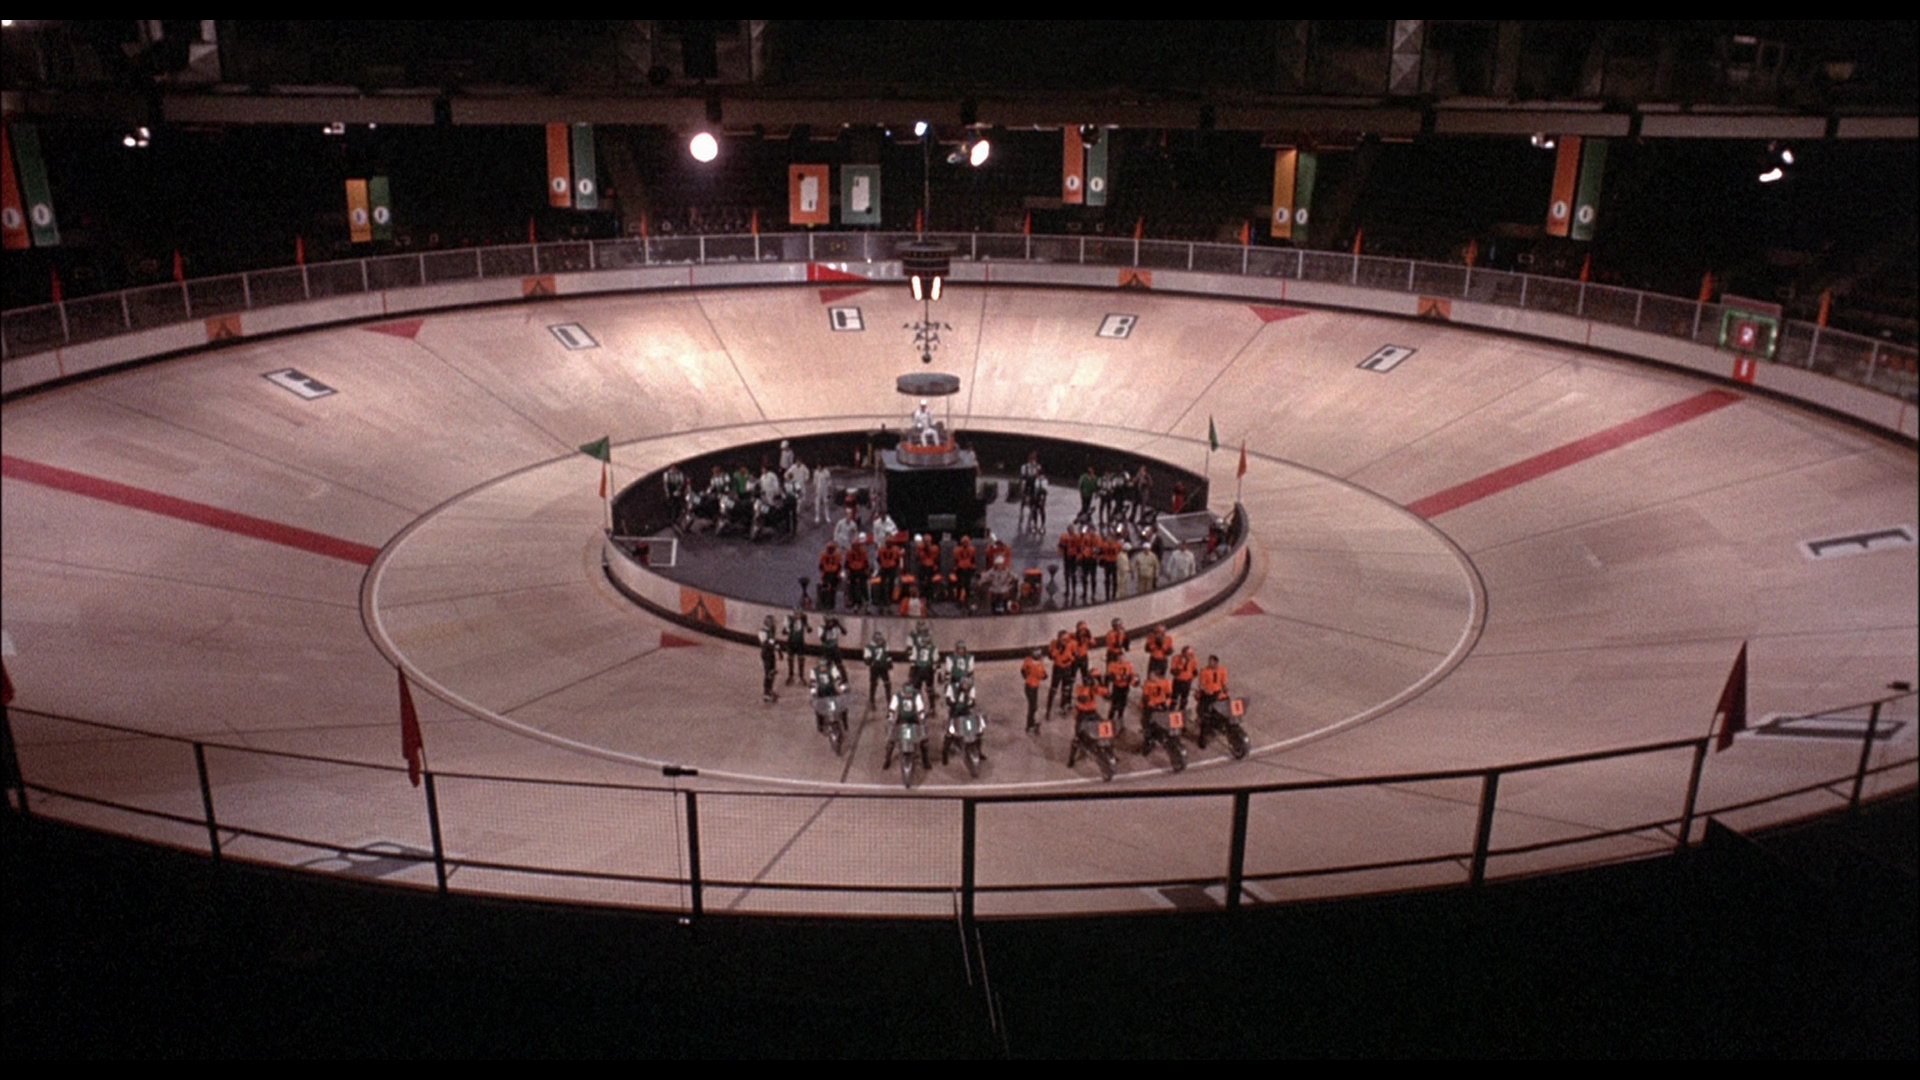 Rollerball (1975) - Blu-ray DVD review at Mondo Esoterica